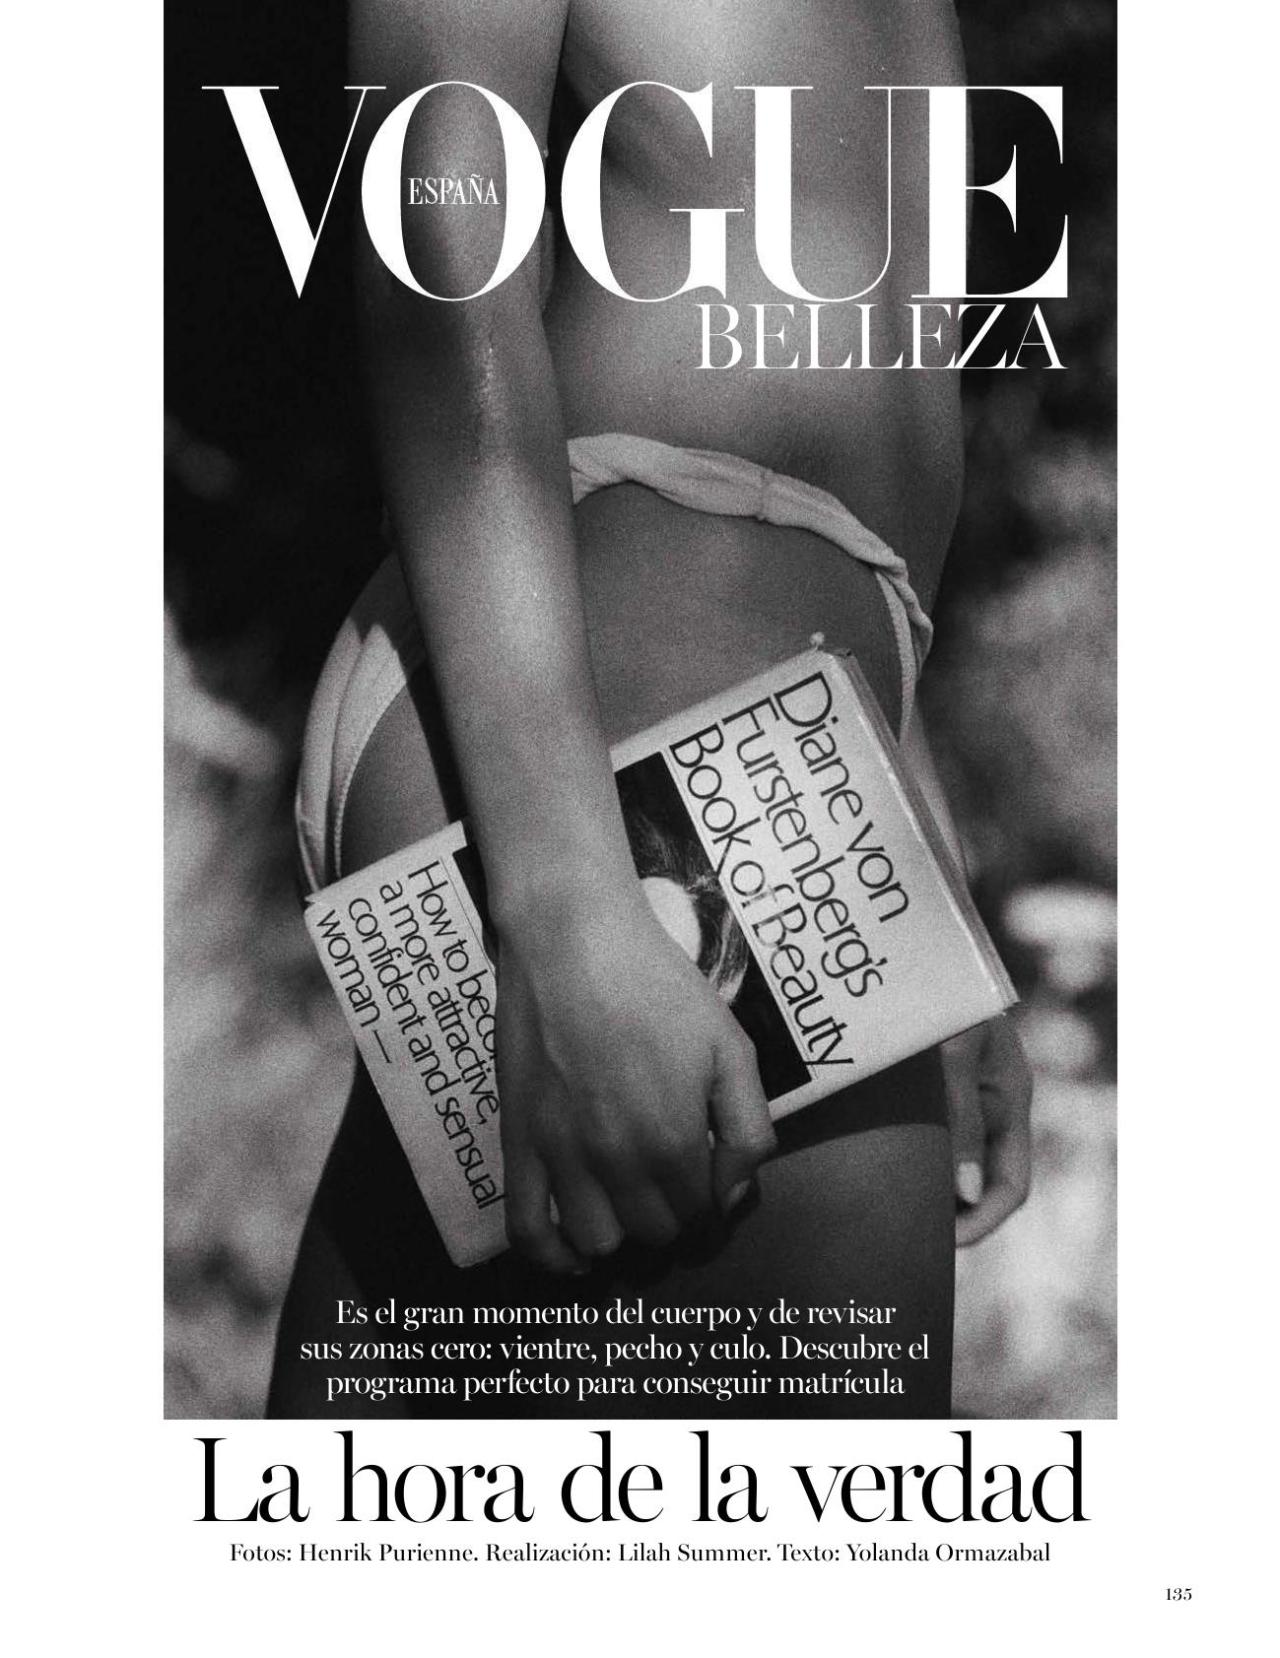 This cover of Vogue Spain